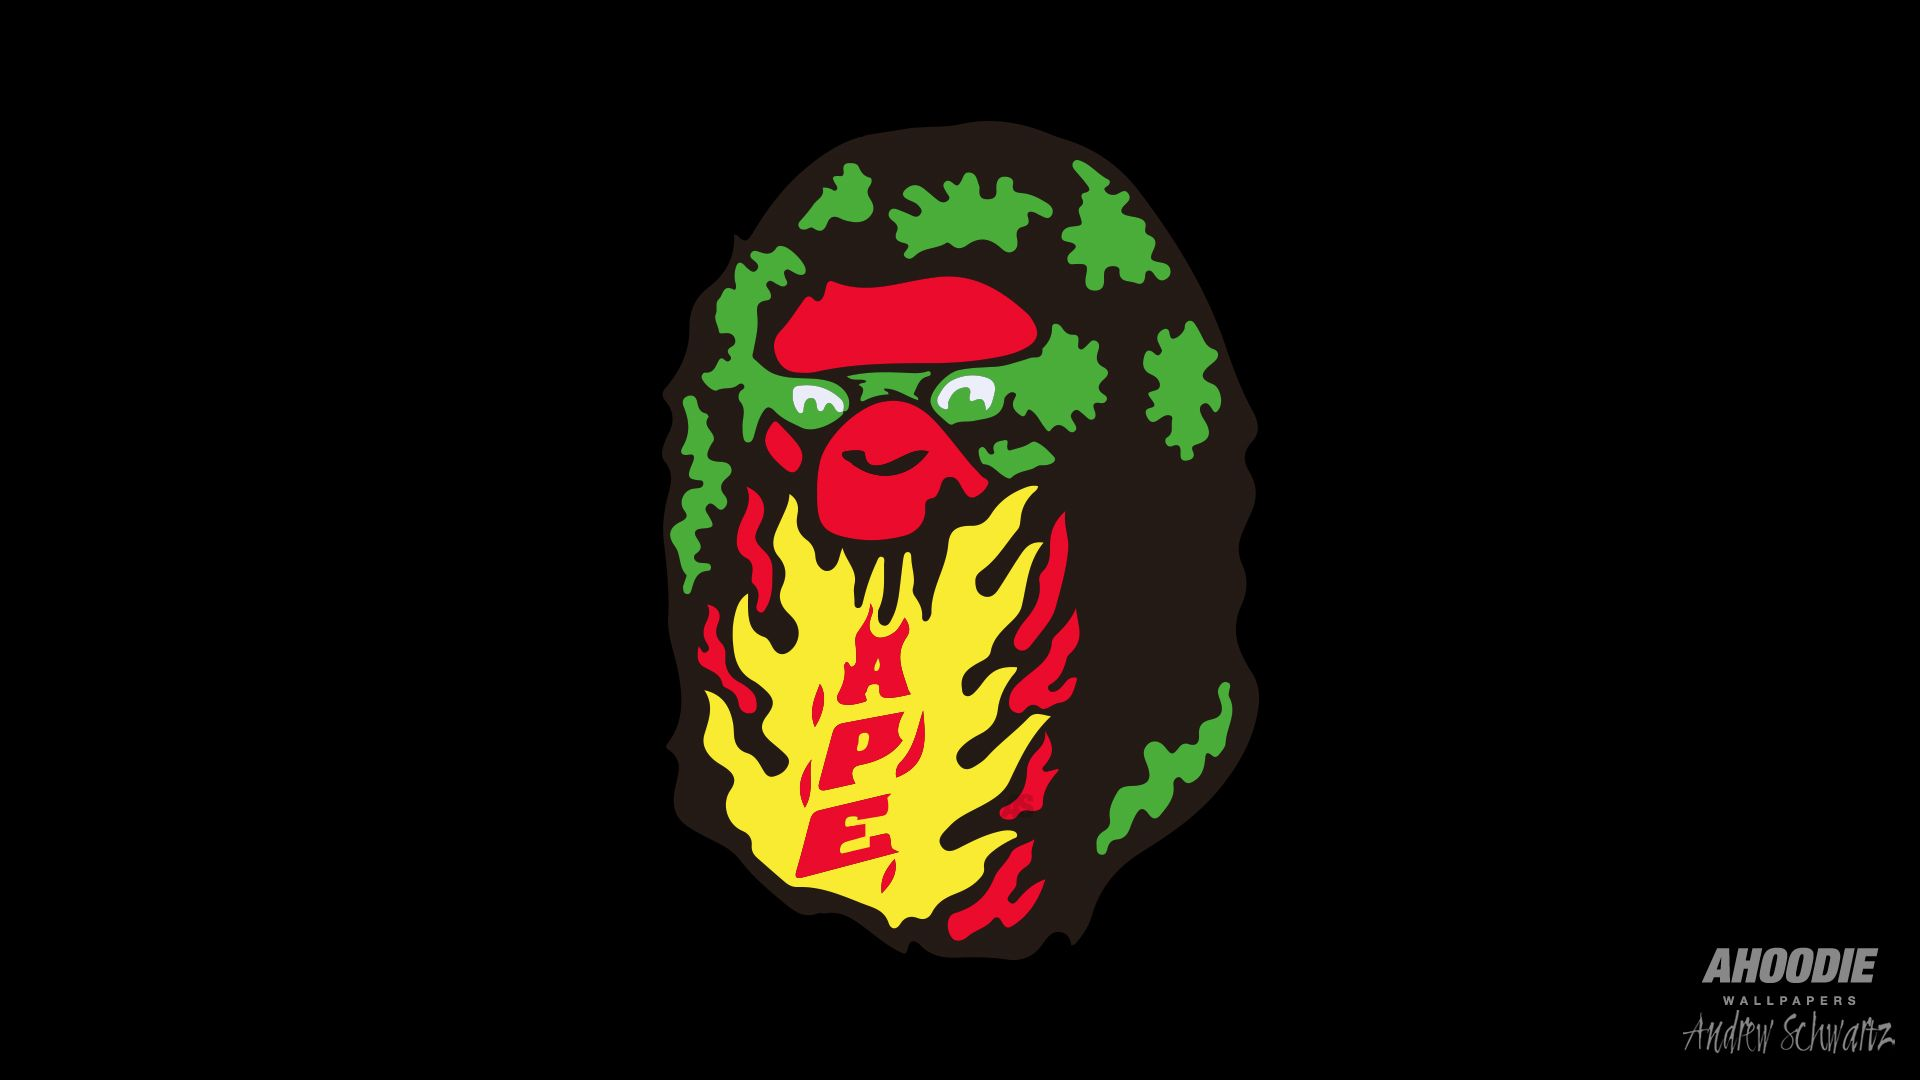 Download Wallpaper High Quality Bape - 9fc8451261fc75895991fe9299fb36a2  Collection_475858.jpg